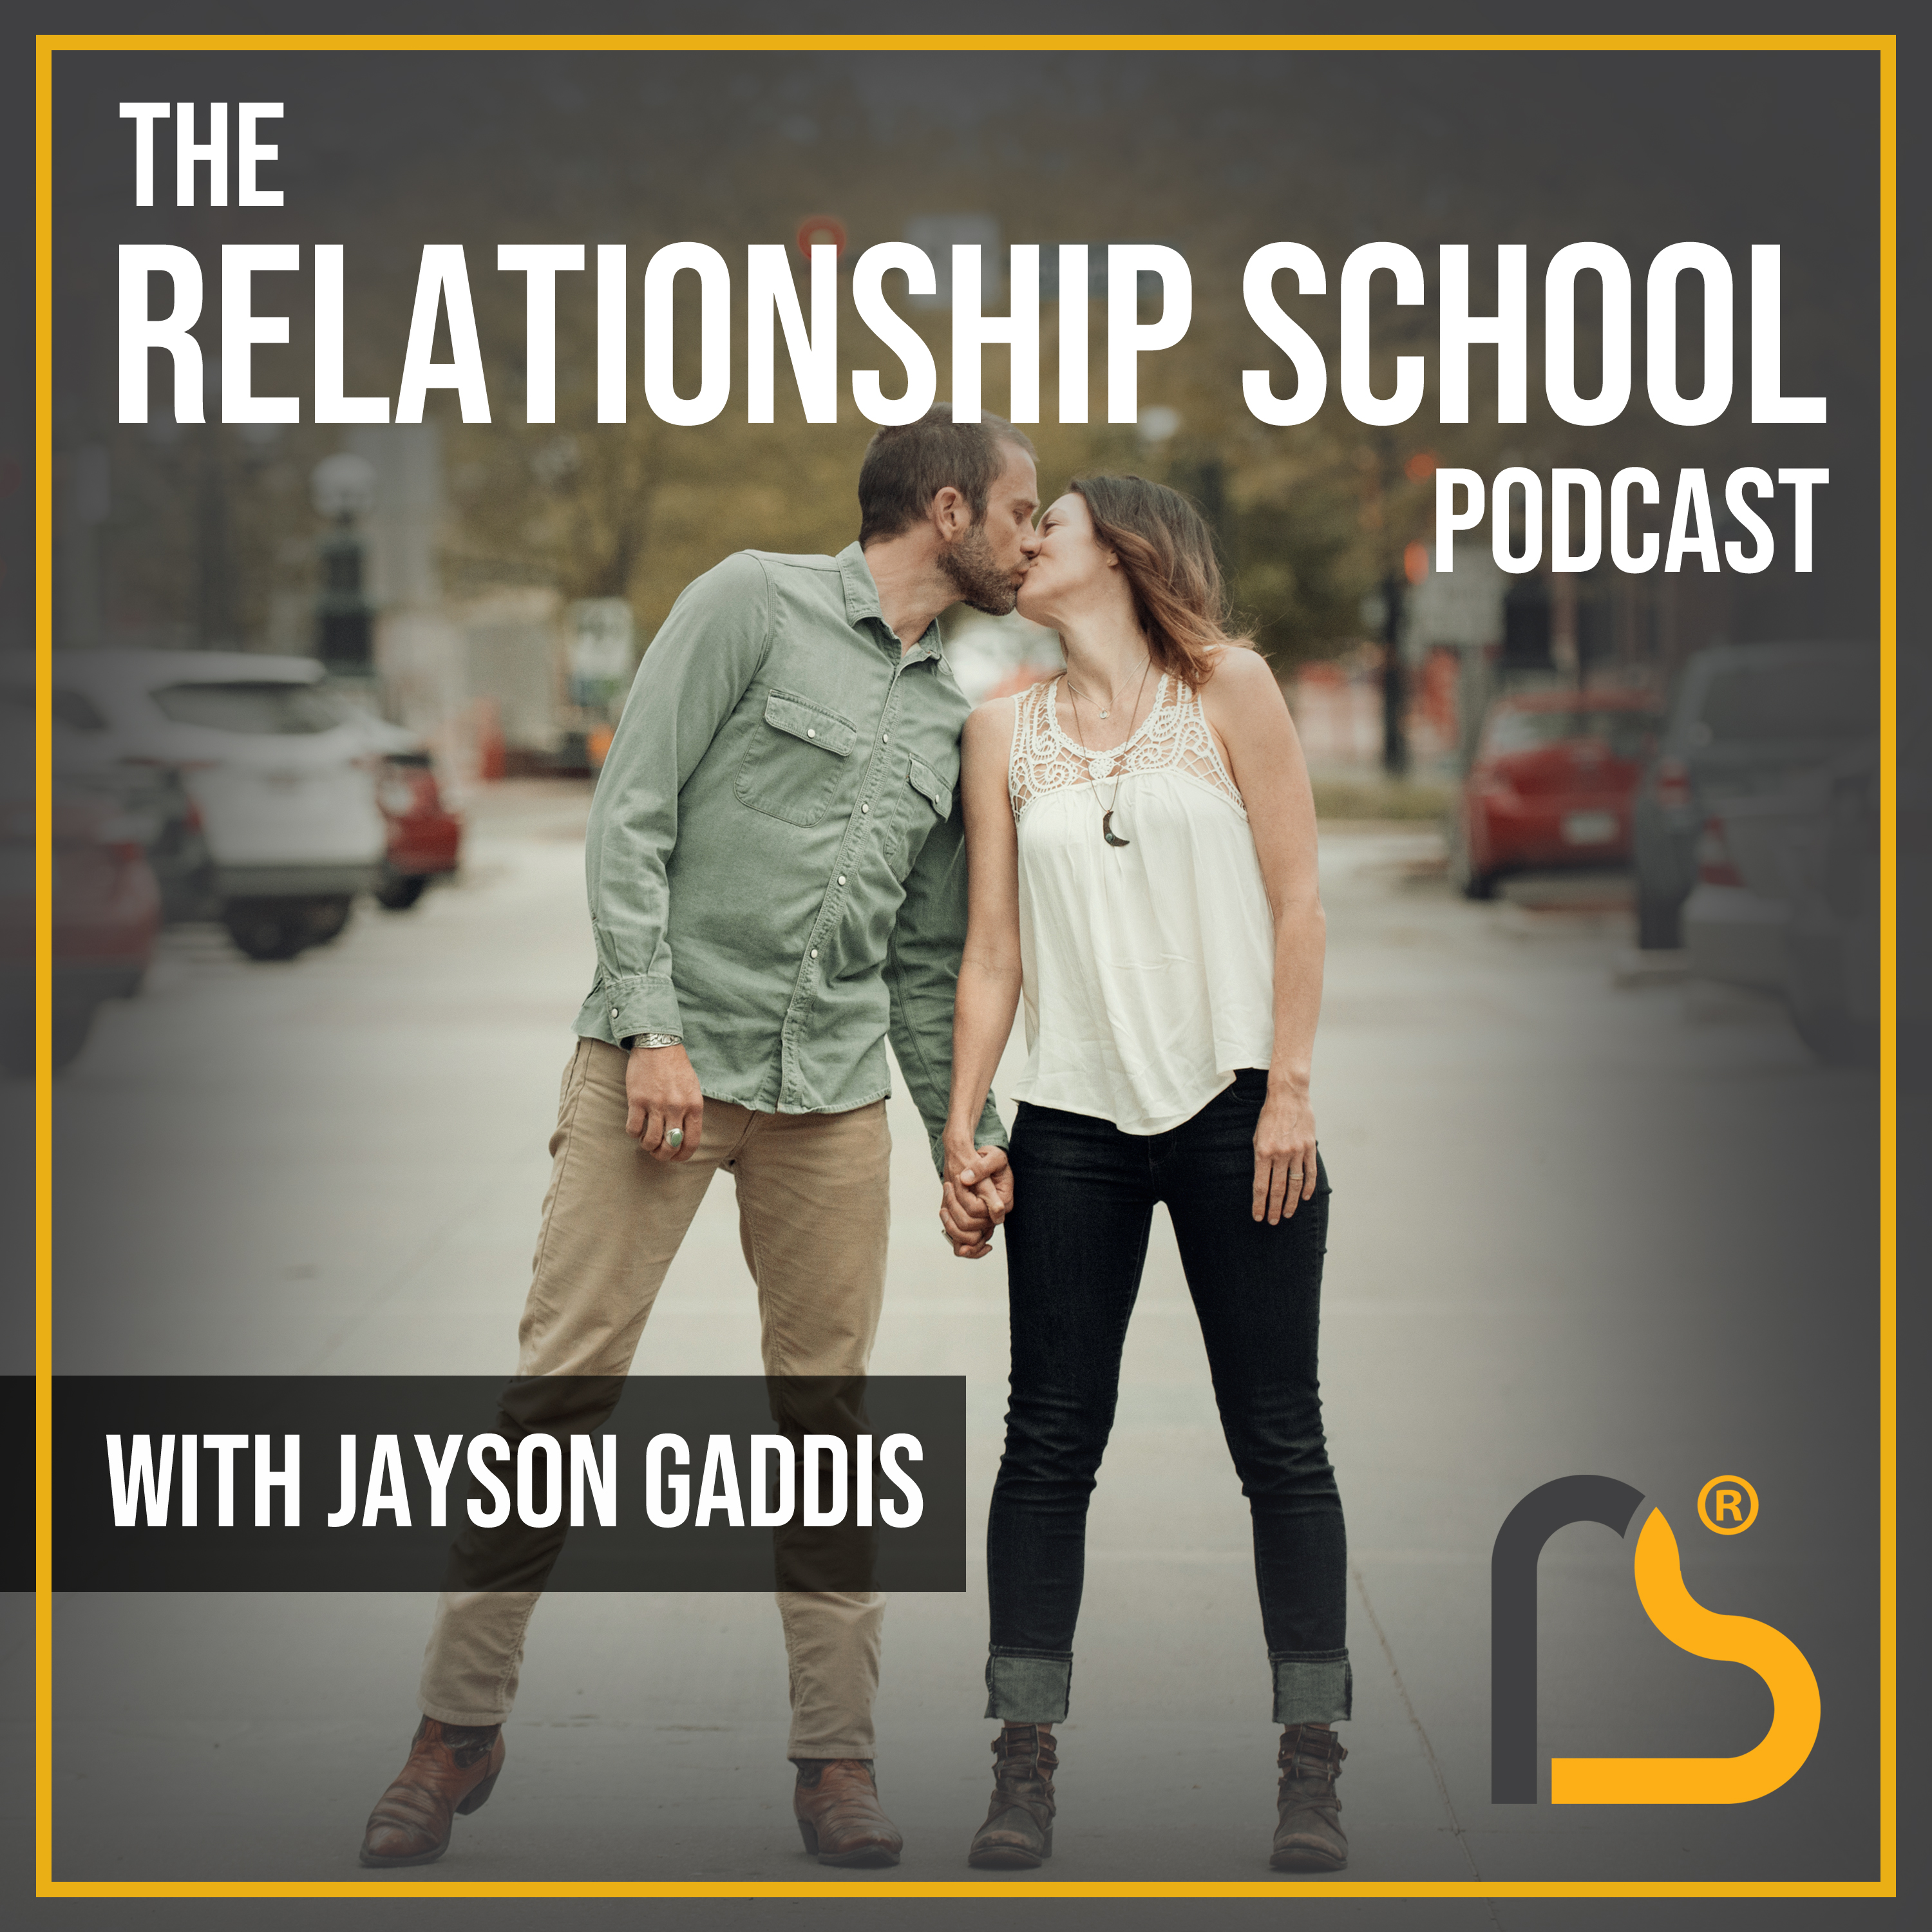 The Relationship School Podcast - How Does A Woman Help A Man Open Up And Do His Inner Work? - Relationship School Podcast EPISODE 258